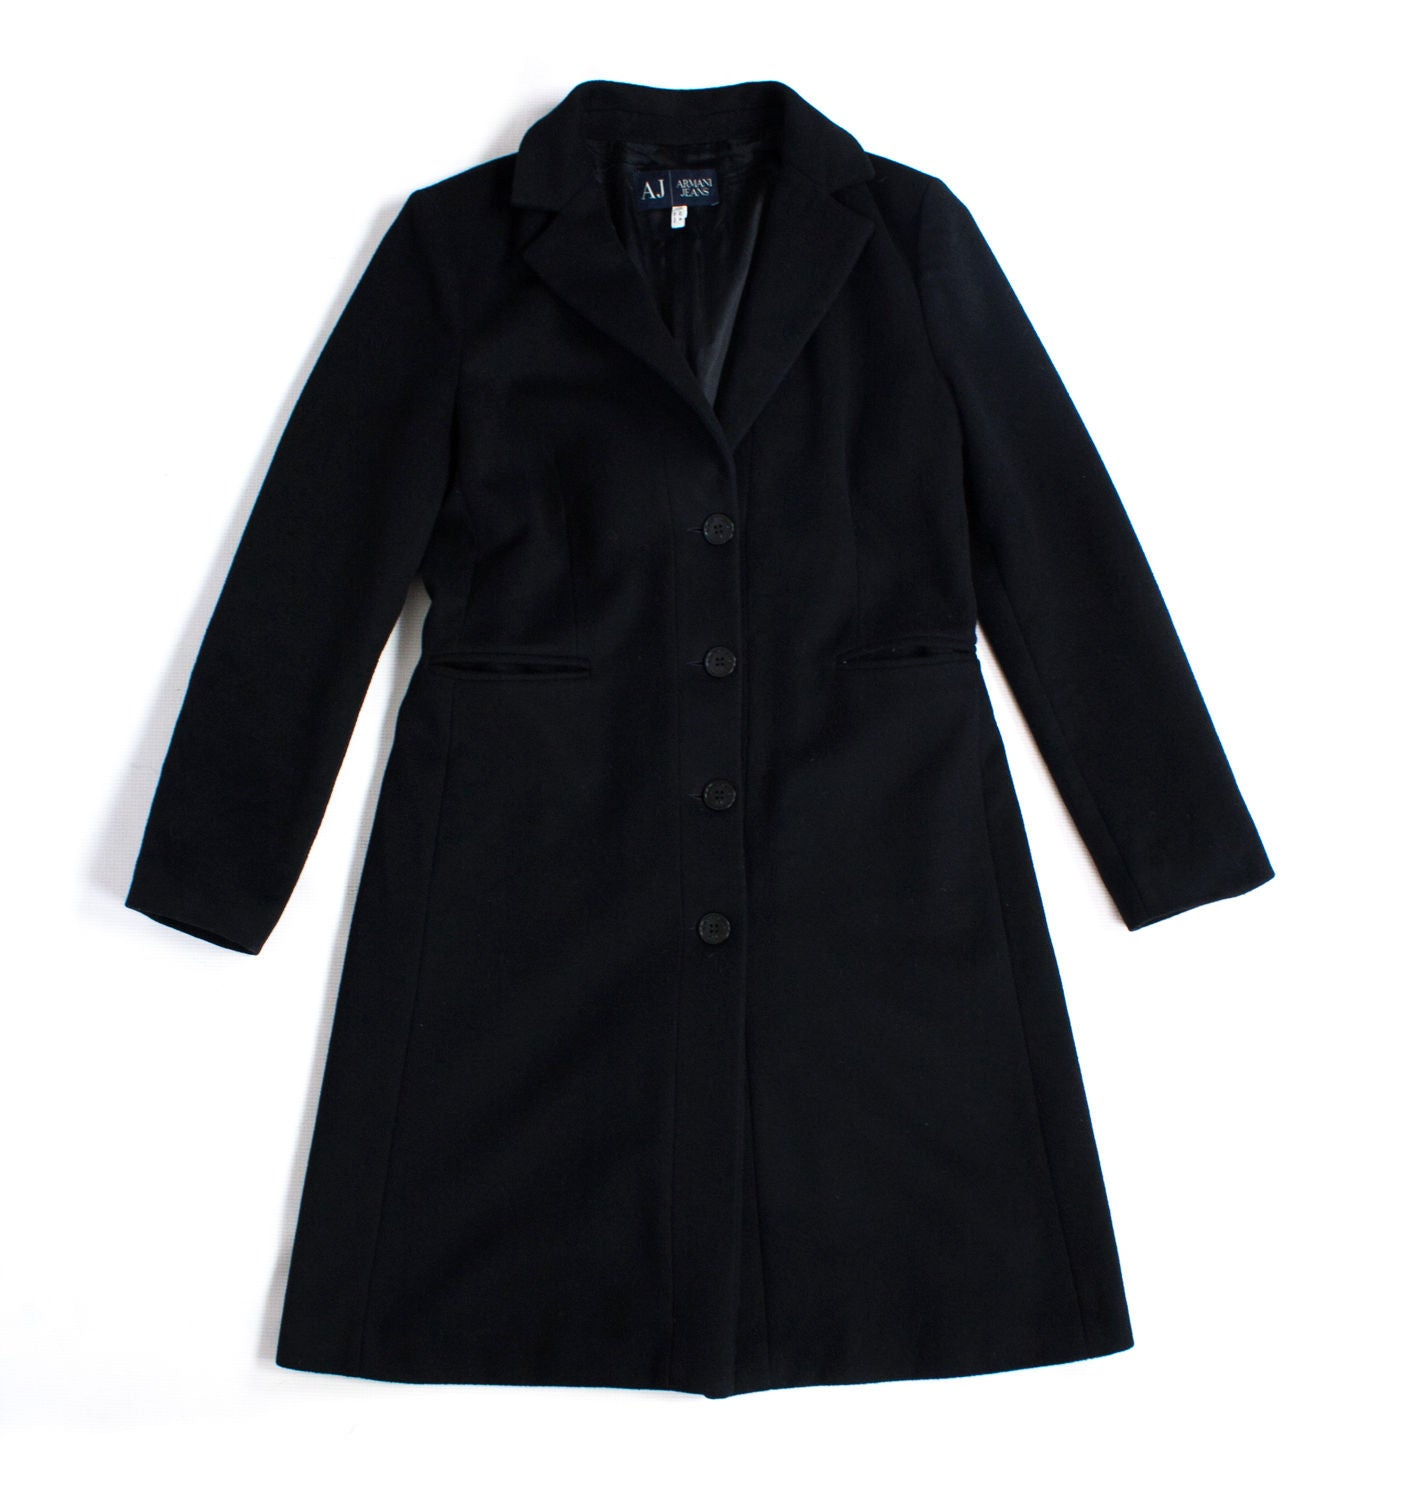 Armani Black Wool Blend Coat SIZE M, USA 6 - secondfirst